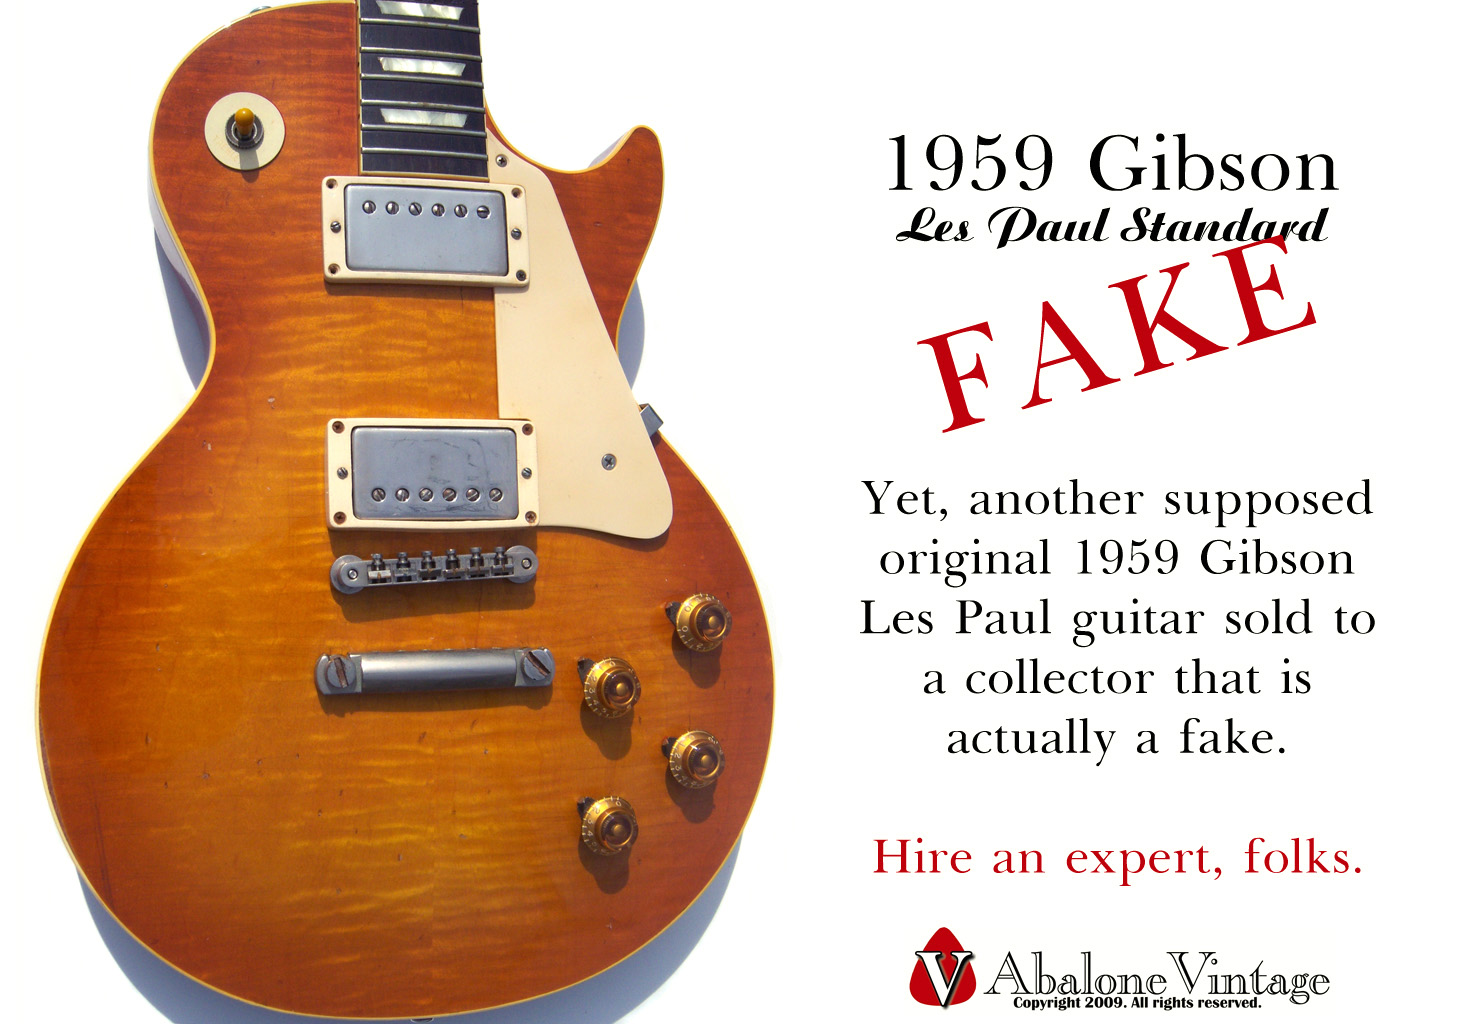 Fake 1959 Gibson Les Paul guitar Forgery replica